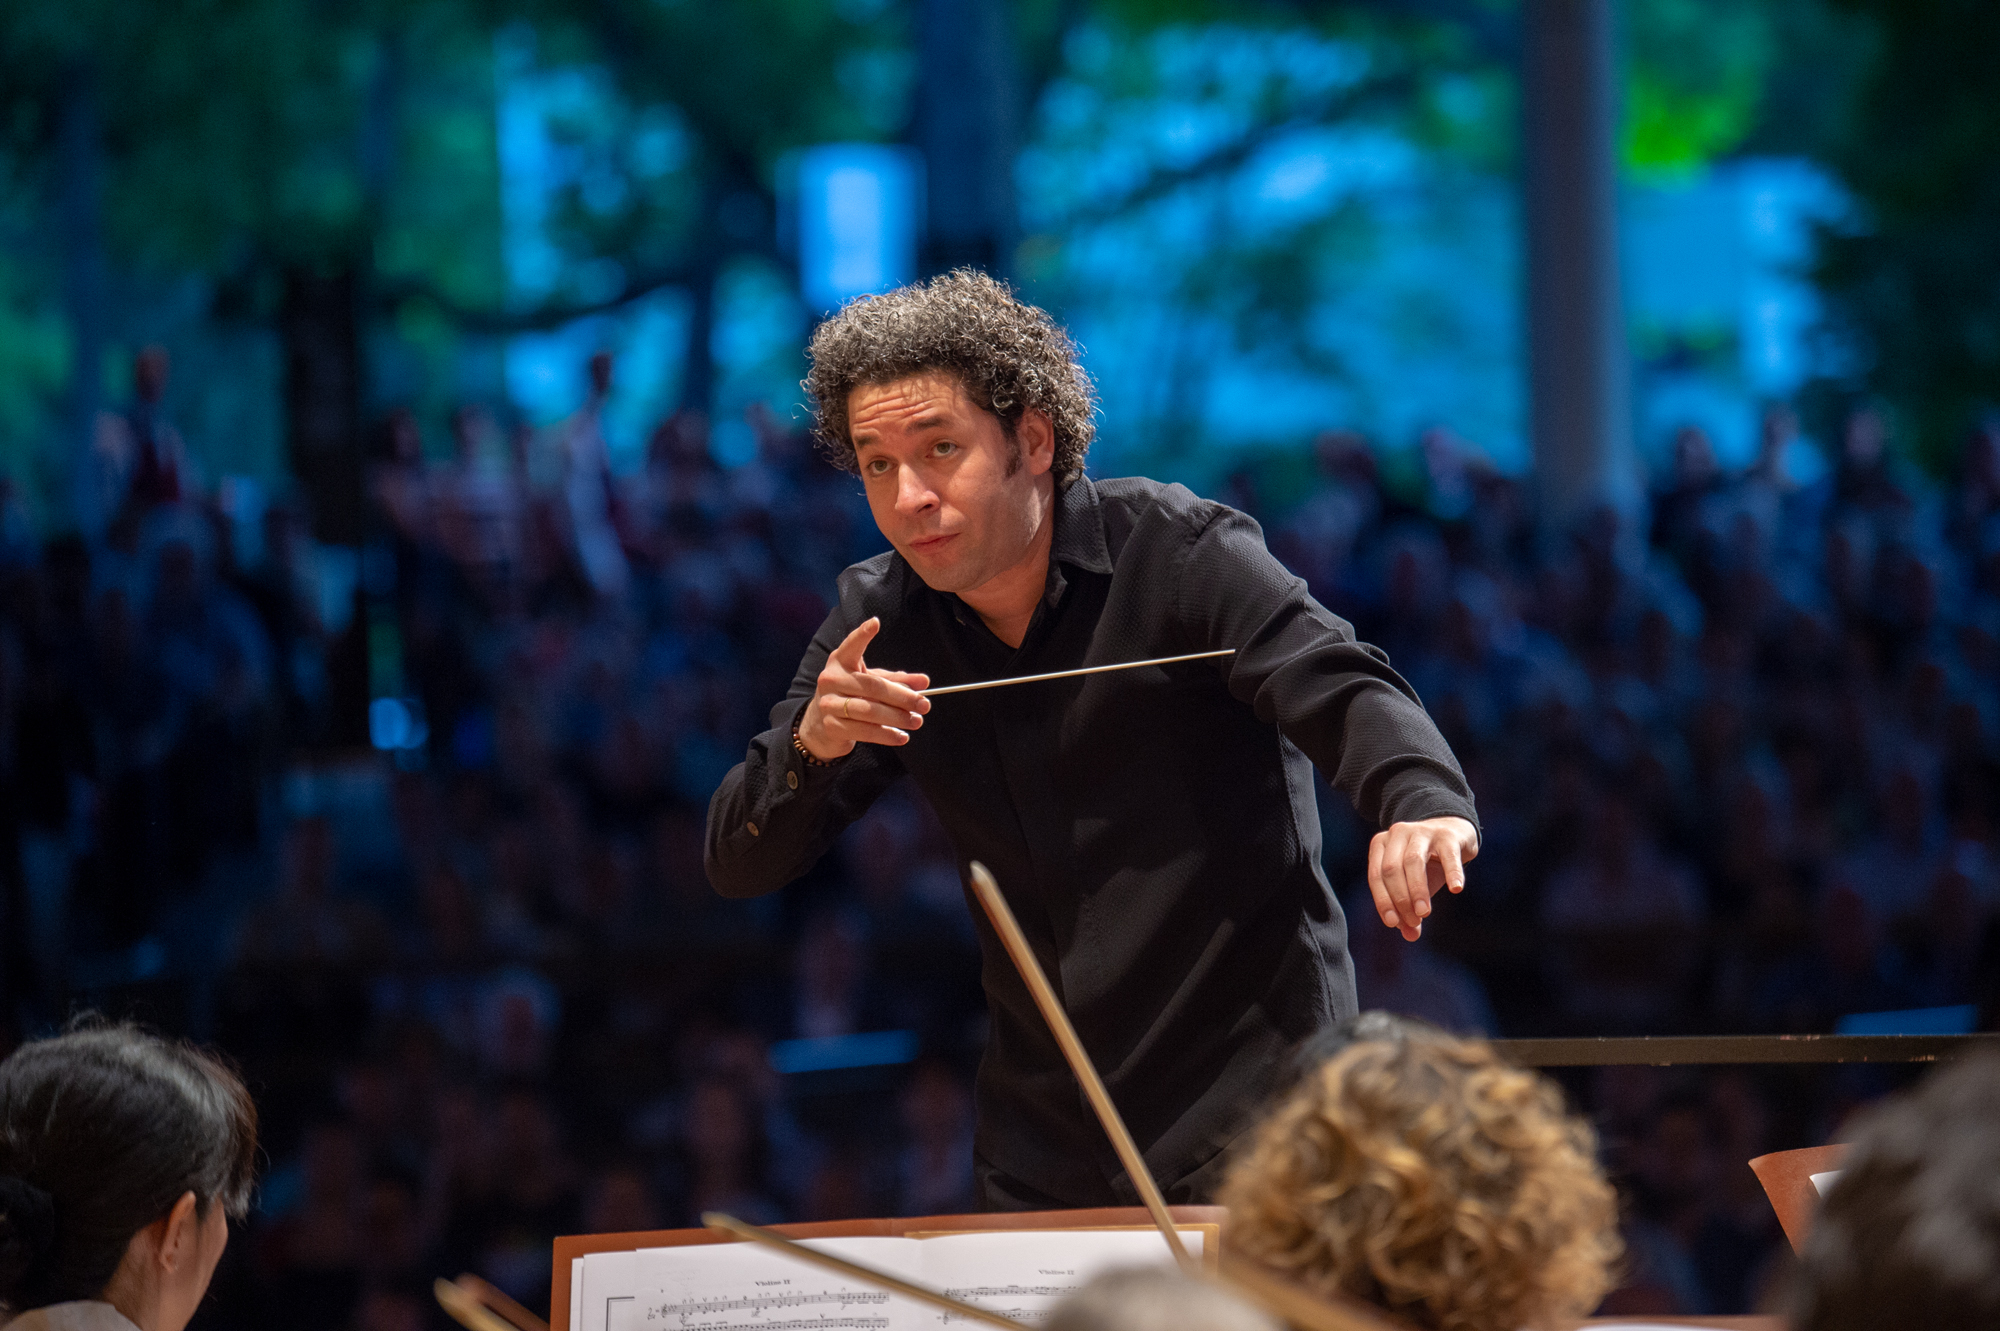 CS18_DUDAMEL_WANG_046.jpg